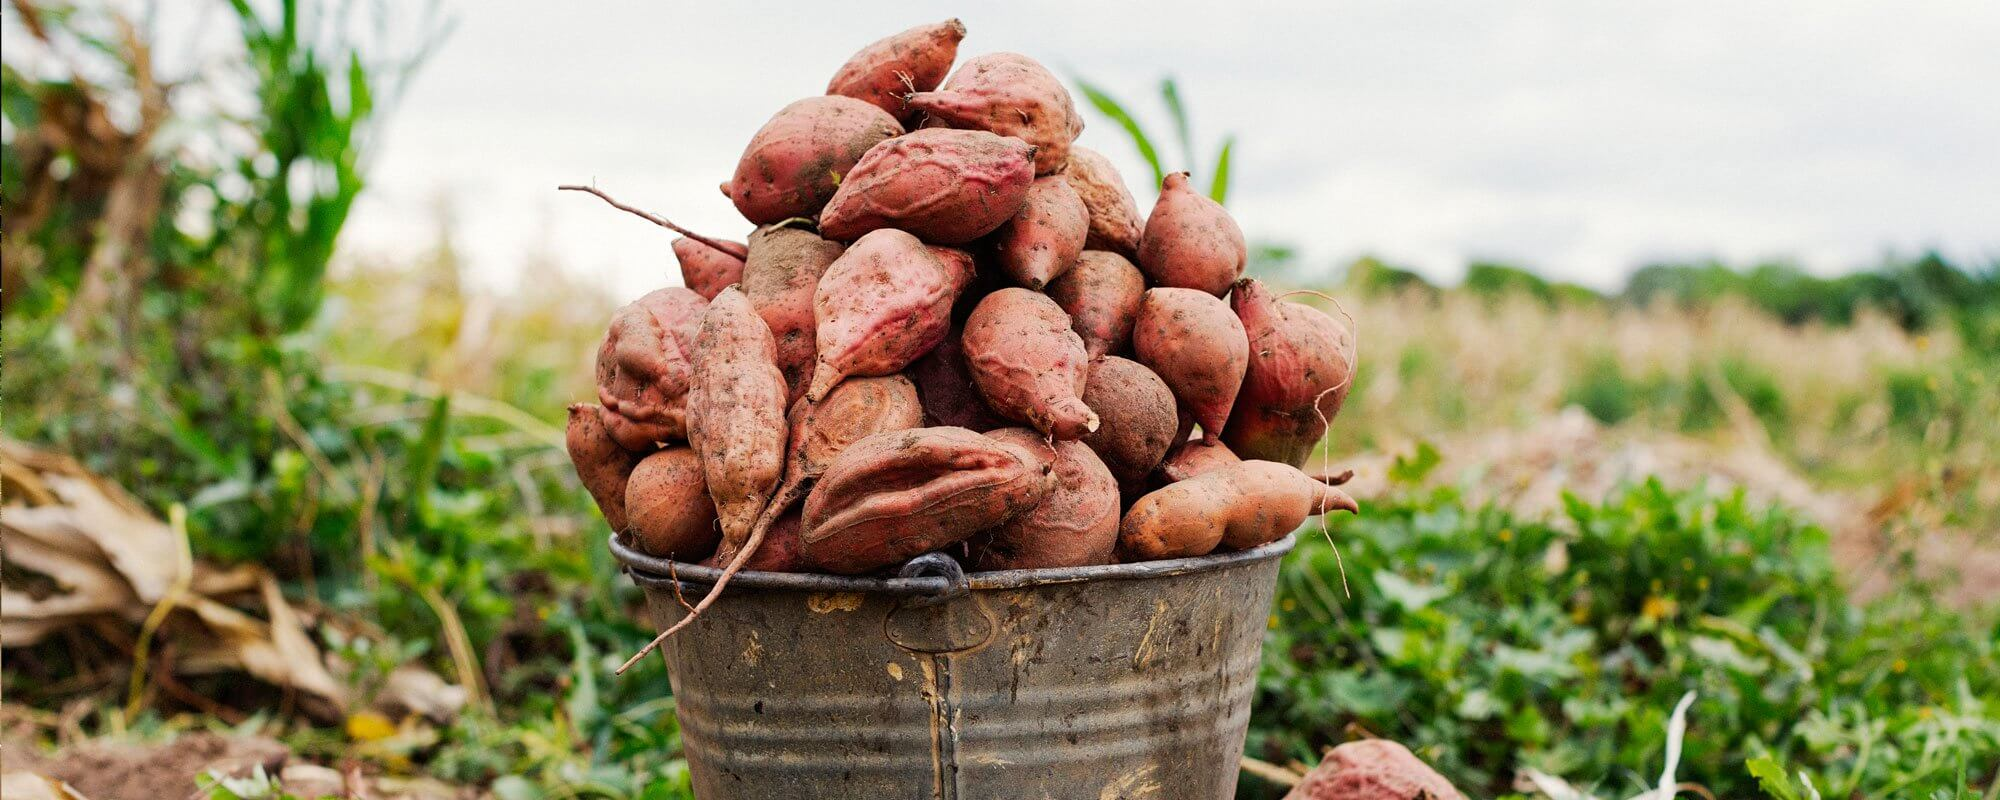 A bucket of sweet potatoes recently harvested in Malawi